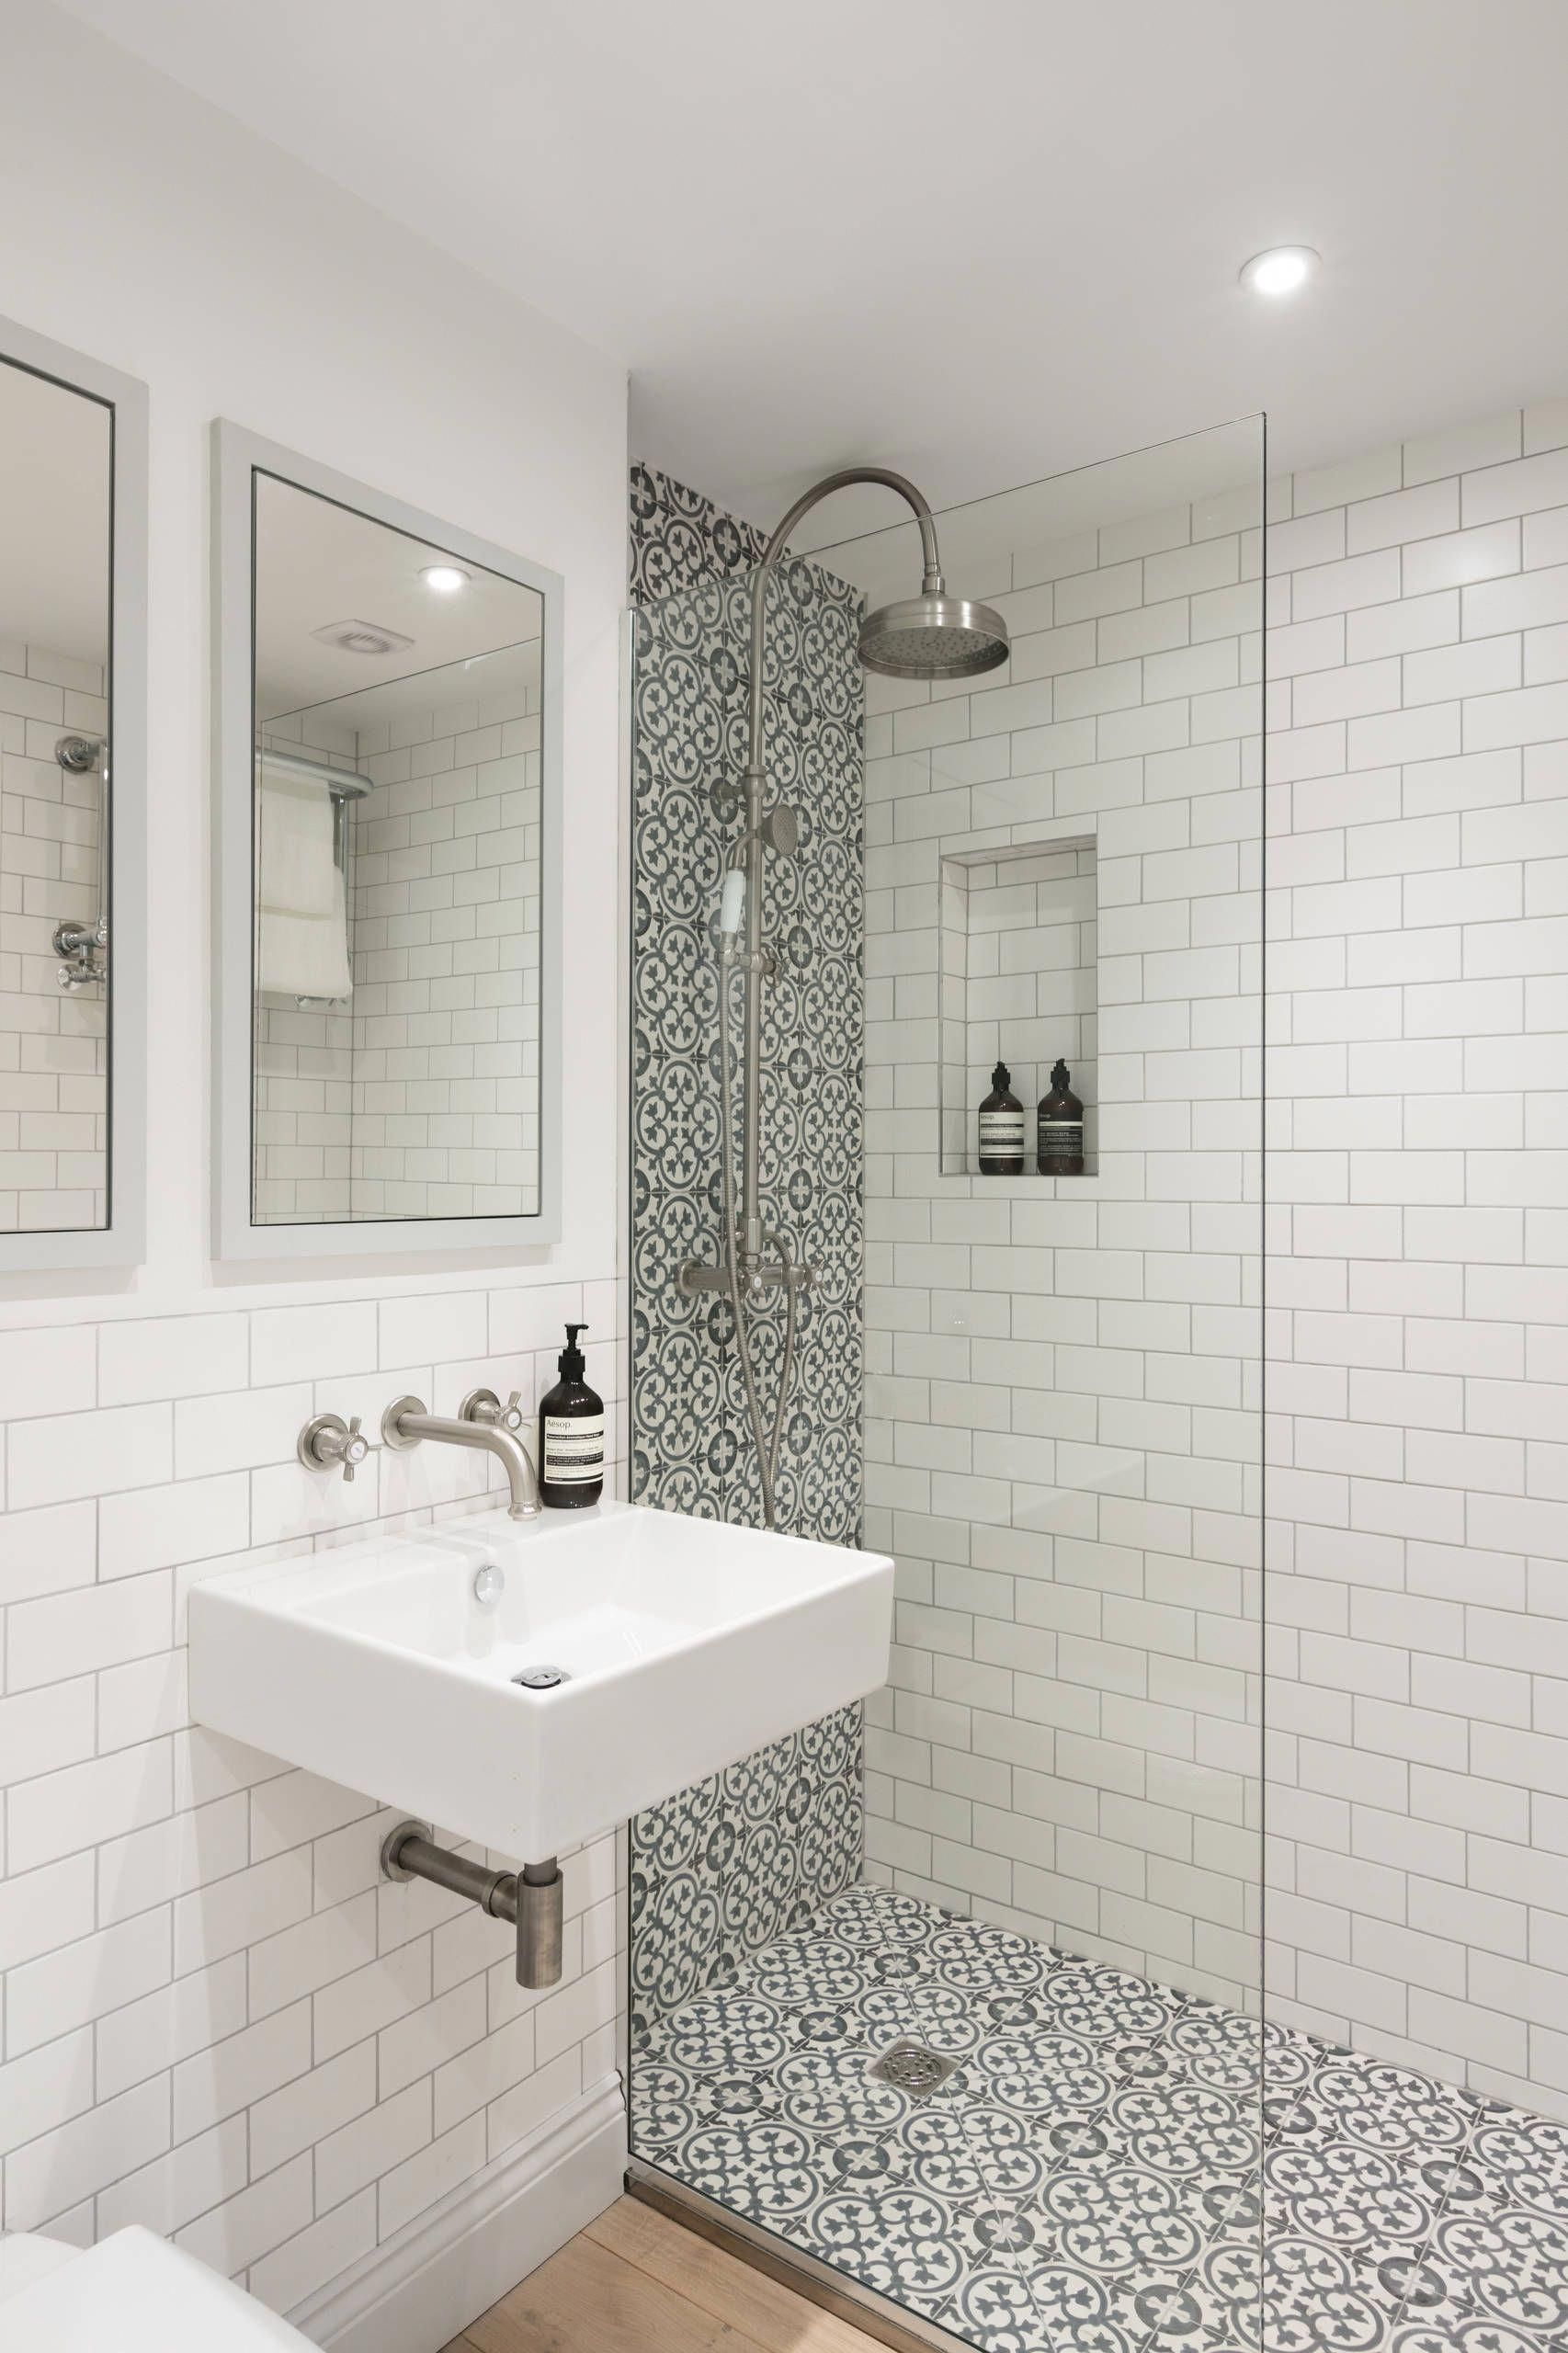 Double Sink Vanity Sharing The Bathroom In The Morning Can Be Hard With Just One Sink If Yo Small Bathroom Makeover Bathroom Remodel Shower Bathrooms Remodel